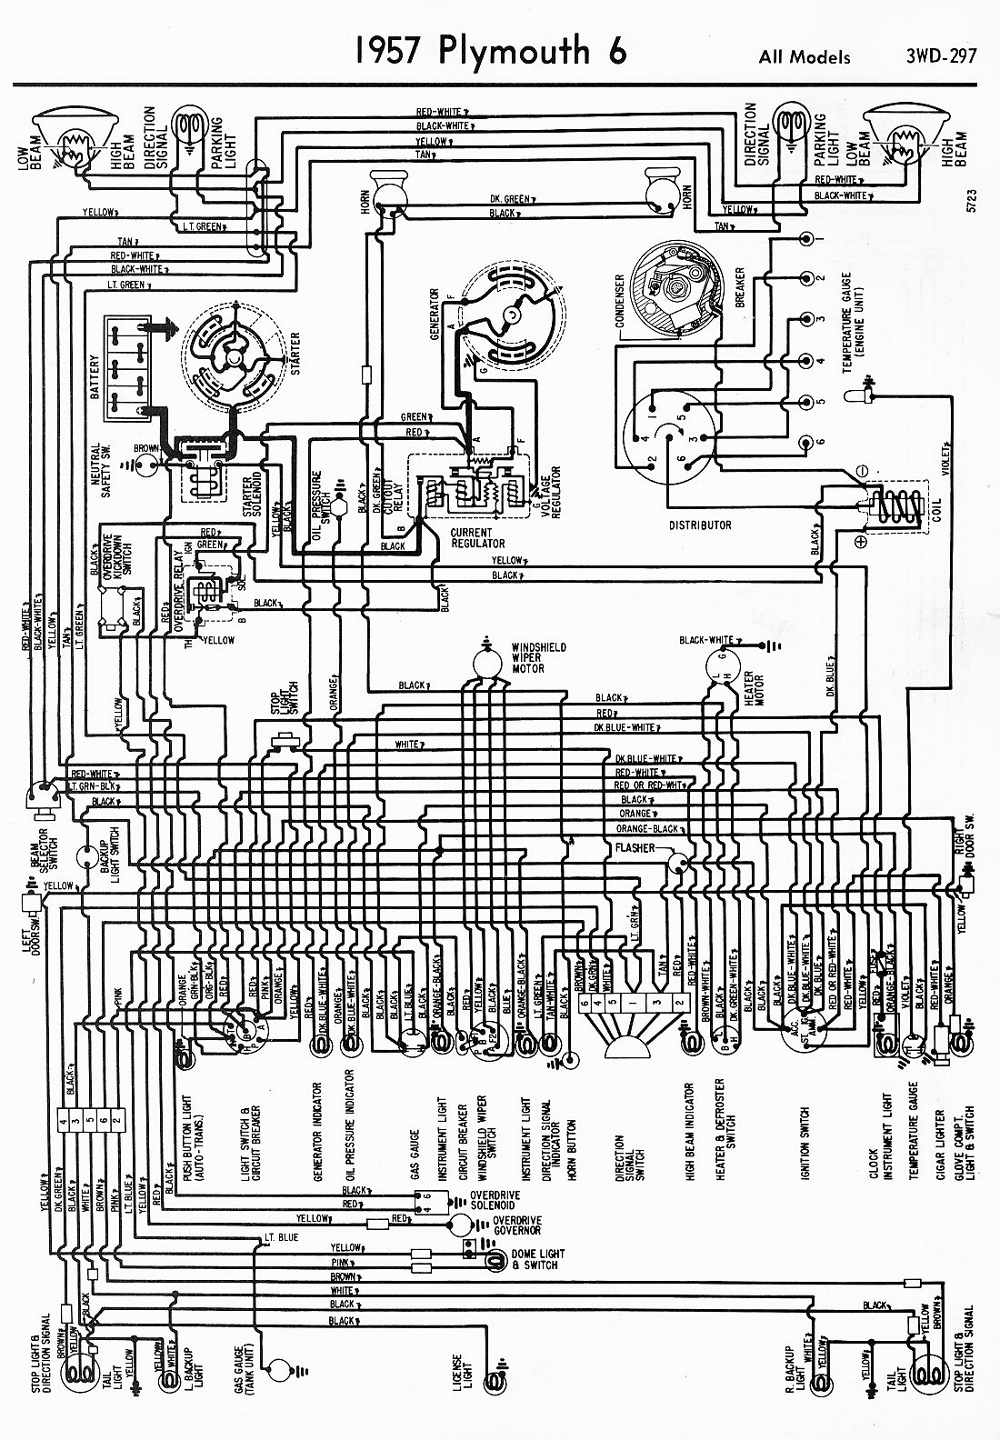 1957 Plymouth 6 All Models Wiring Diagram